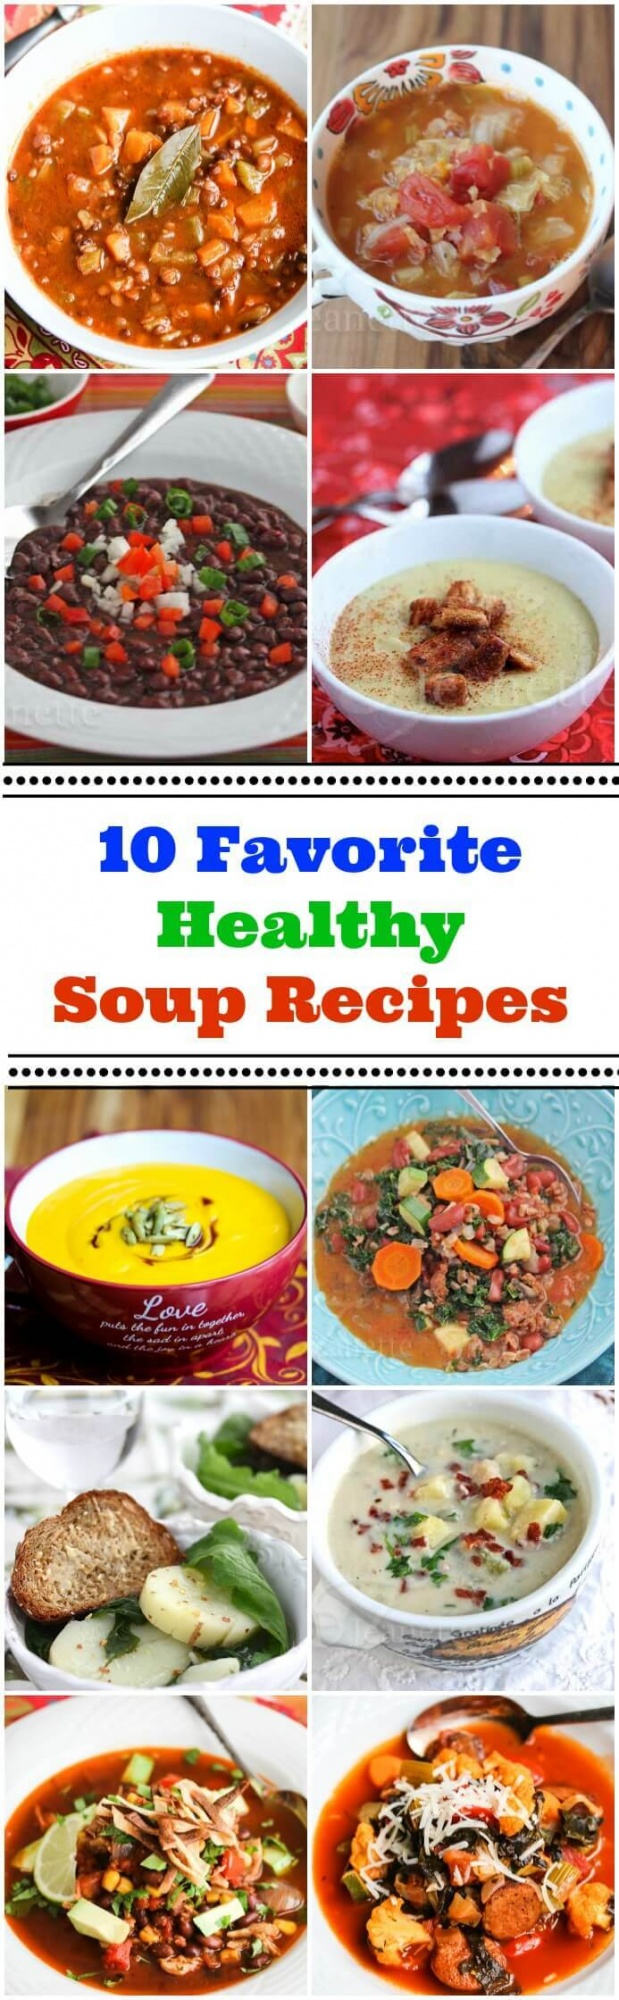 Ten Favorite Healthy Soup Recipes - Keep your belly warm while eating healthy with all these soups made with whole ingredients